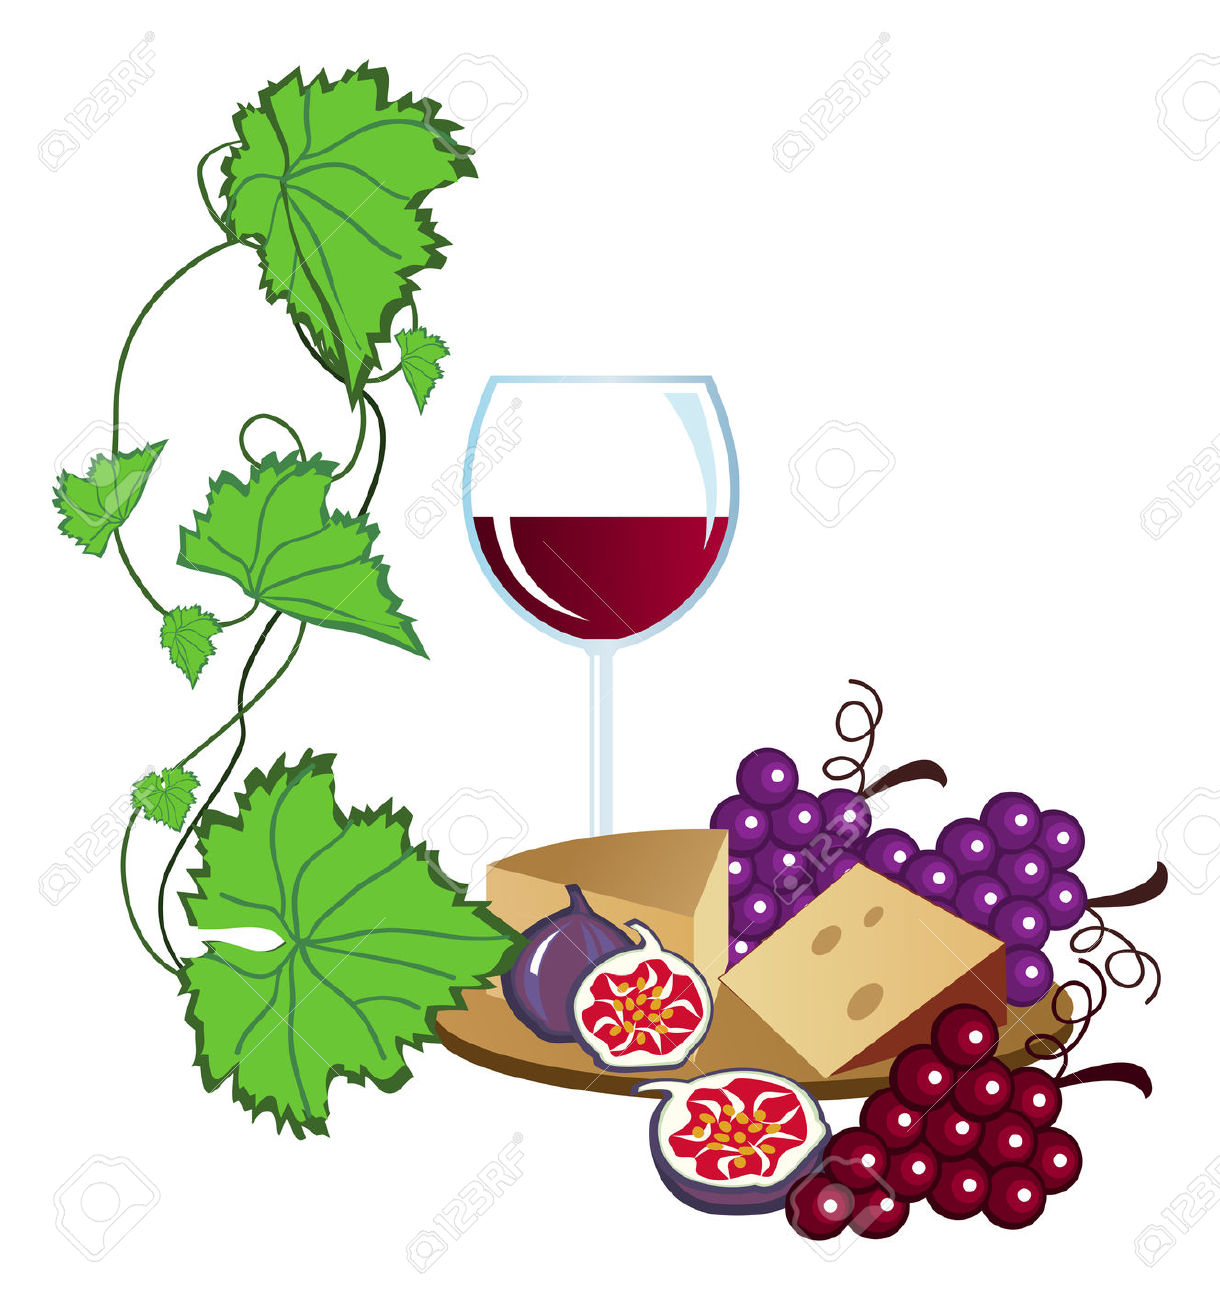 Wine tasting clipart - Clipground